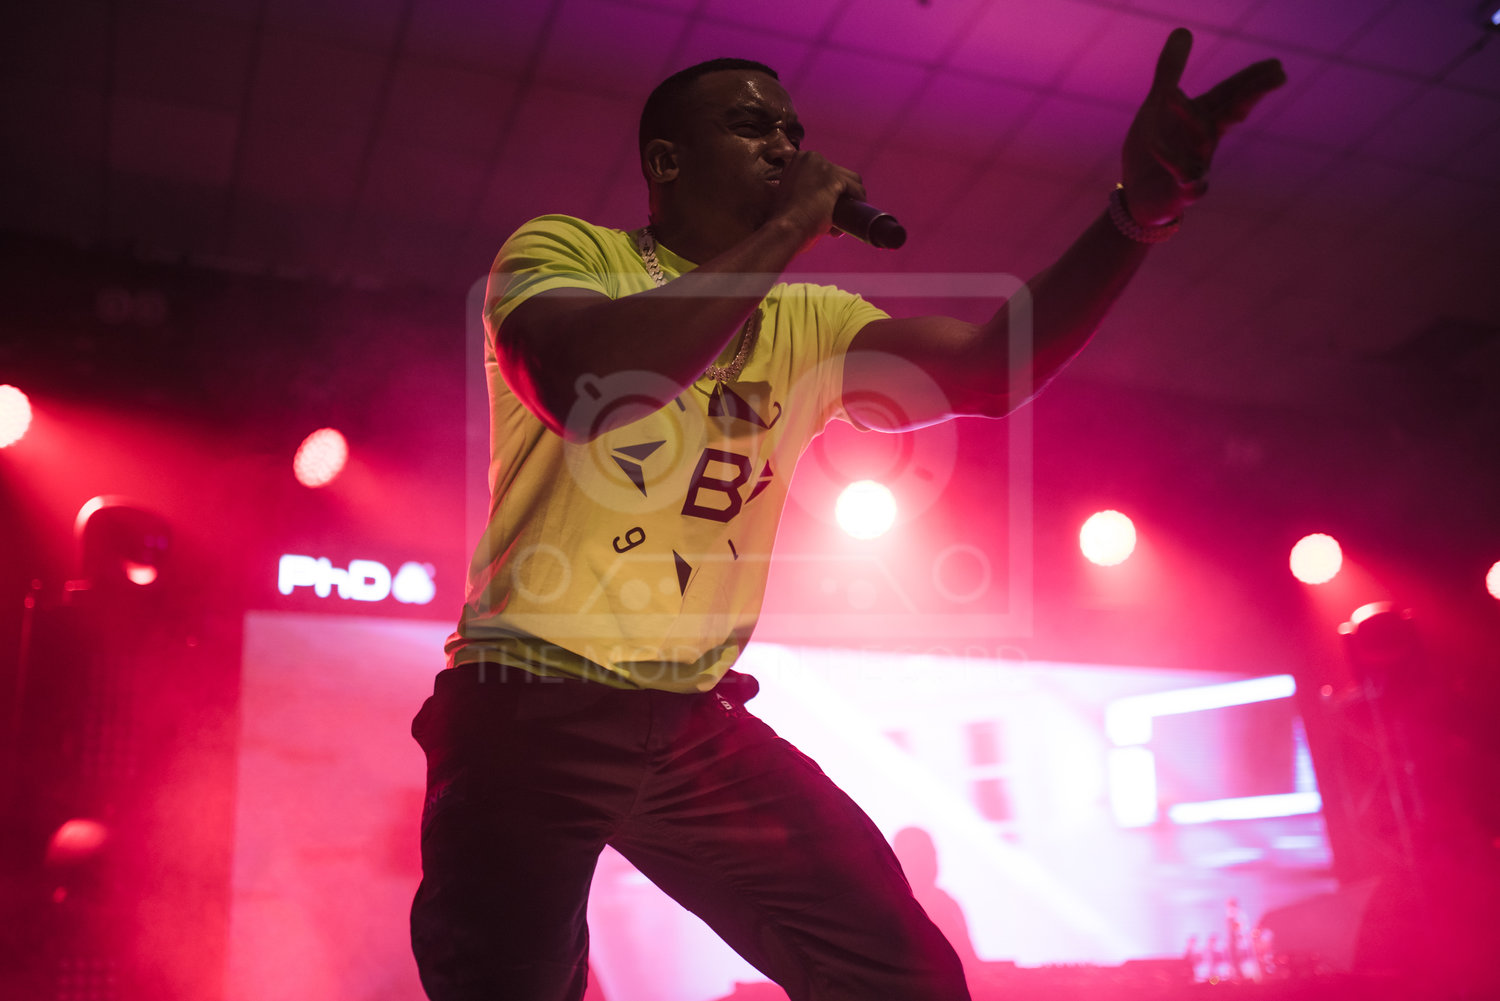 BUGZY MALONE PERFORMING AT EDINBURGH'S CORN EXCHANGE - 14.11.2018  PICTURE BY: INNES REID PHOTOGRAPHY